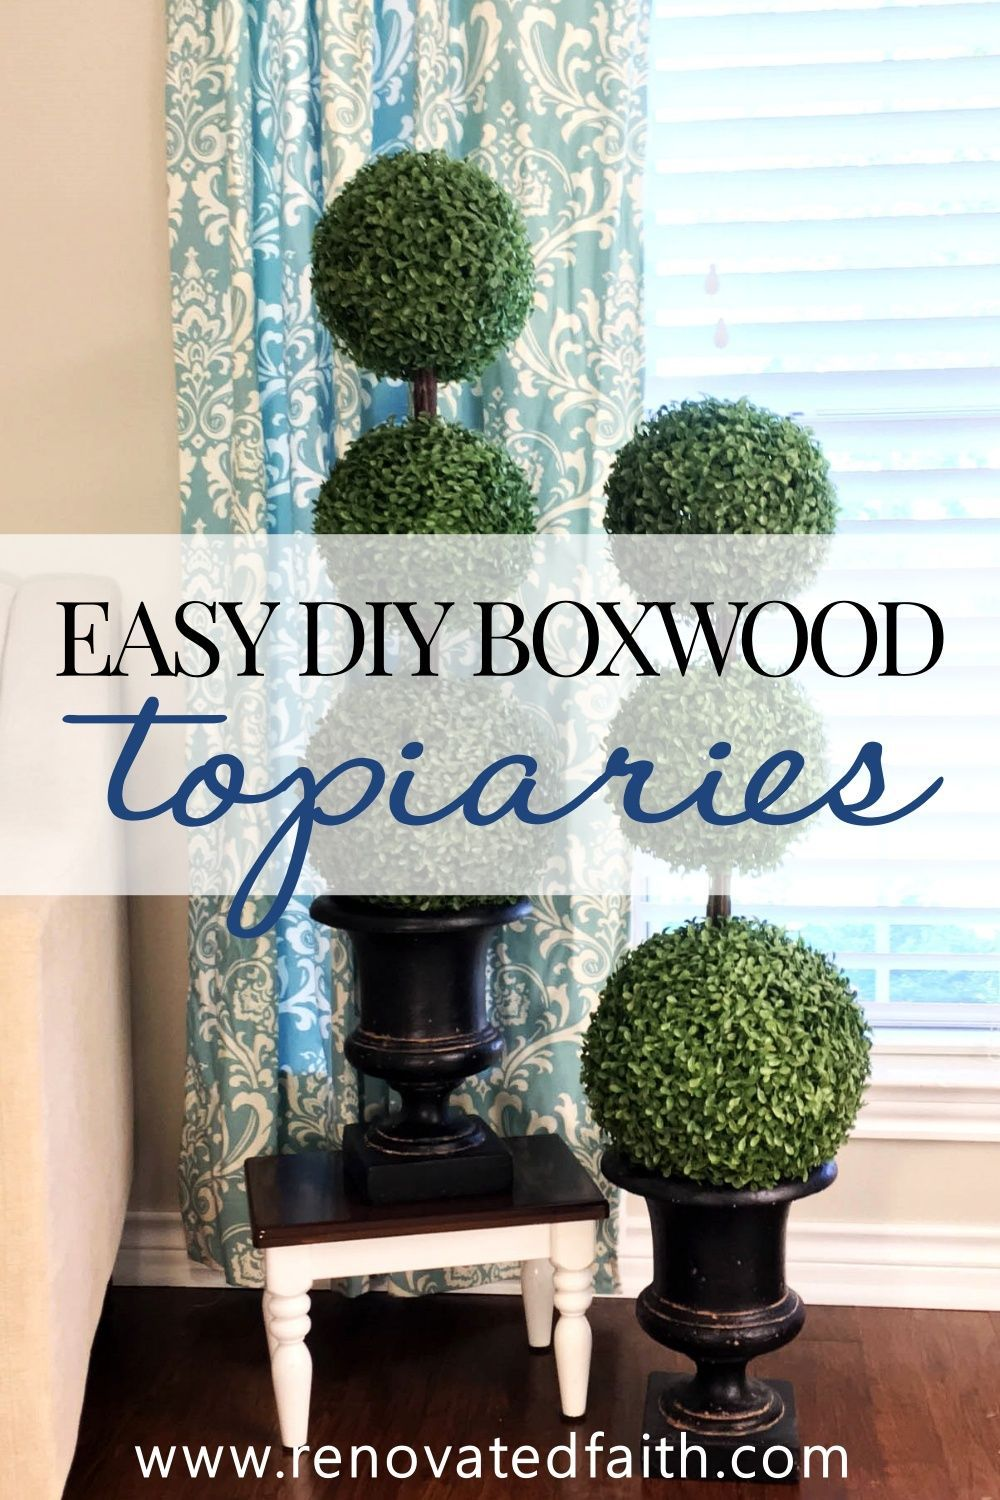 The Easiest Diy Topiary Trees On A Budget Topiary Decorating Ideas In 2020 Diy Home Decor Cheap Farmhouse Decor Home Decor